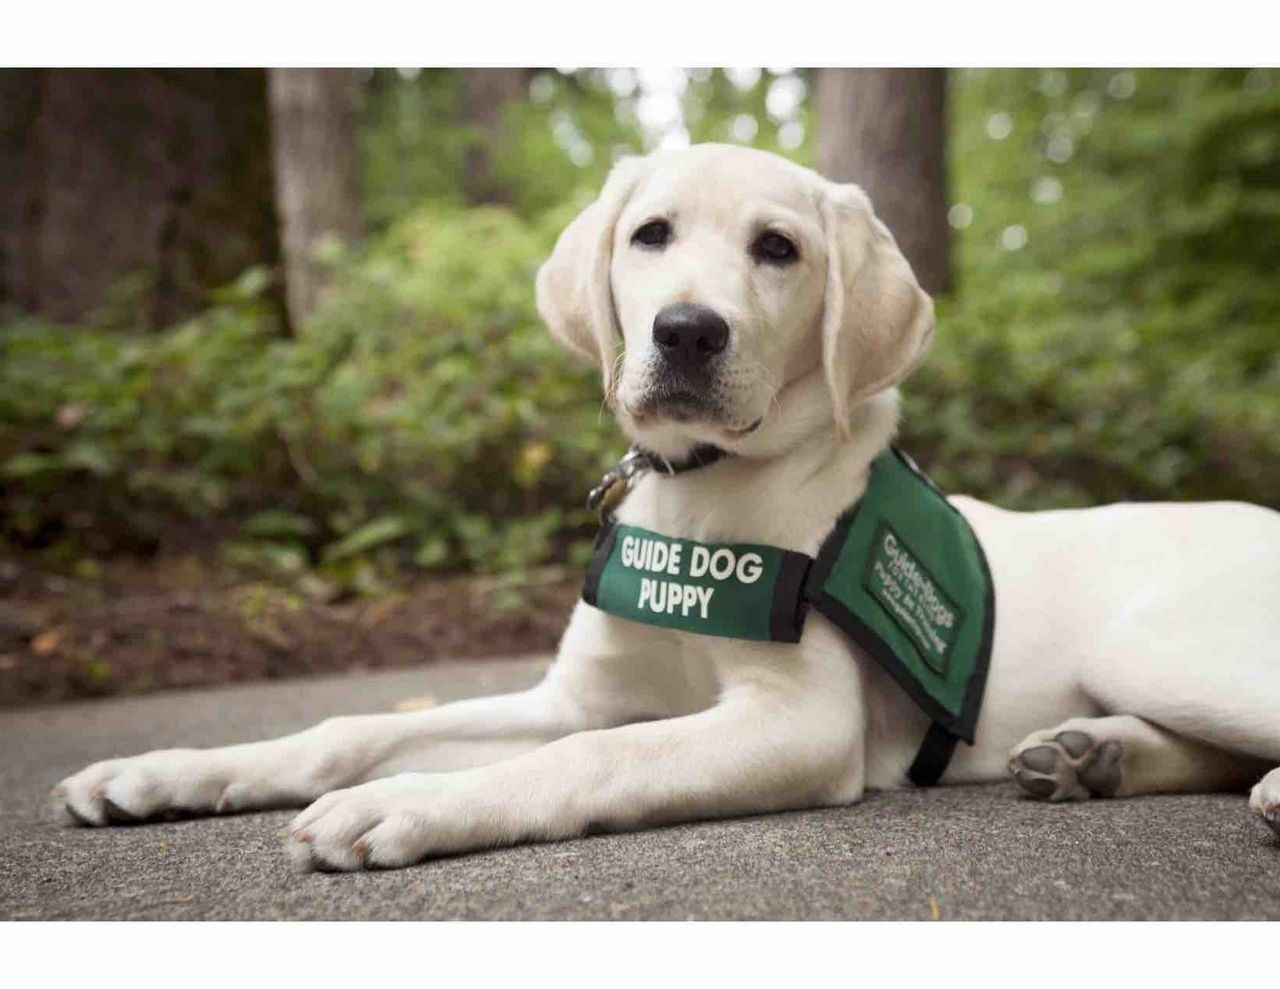 The special bond between humans and animals. It's all in this week's Whisker Fabulous post. @naturalbalance #guidedogmonth http://whiskerfabulous.com/josie-its-national-guide-dog-month/?utm_campaign=coschedule&utm_source=pinterest&utm_medium=Whisker%20Fabulous&utm_content=JOSIE%3A%20IT%27S%20NATIONAL%20GUIDE%20DOG%20MONTH